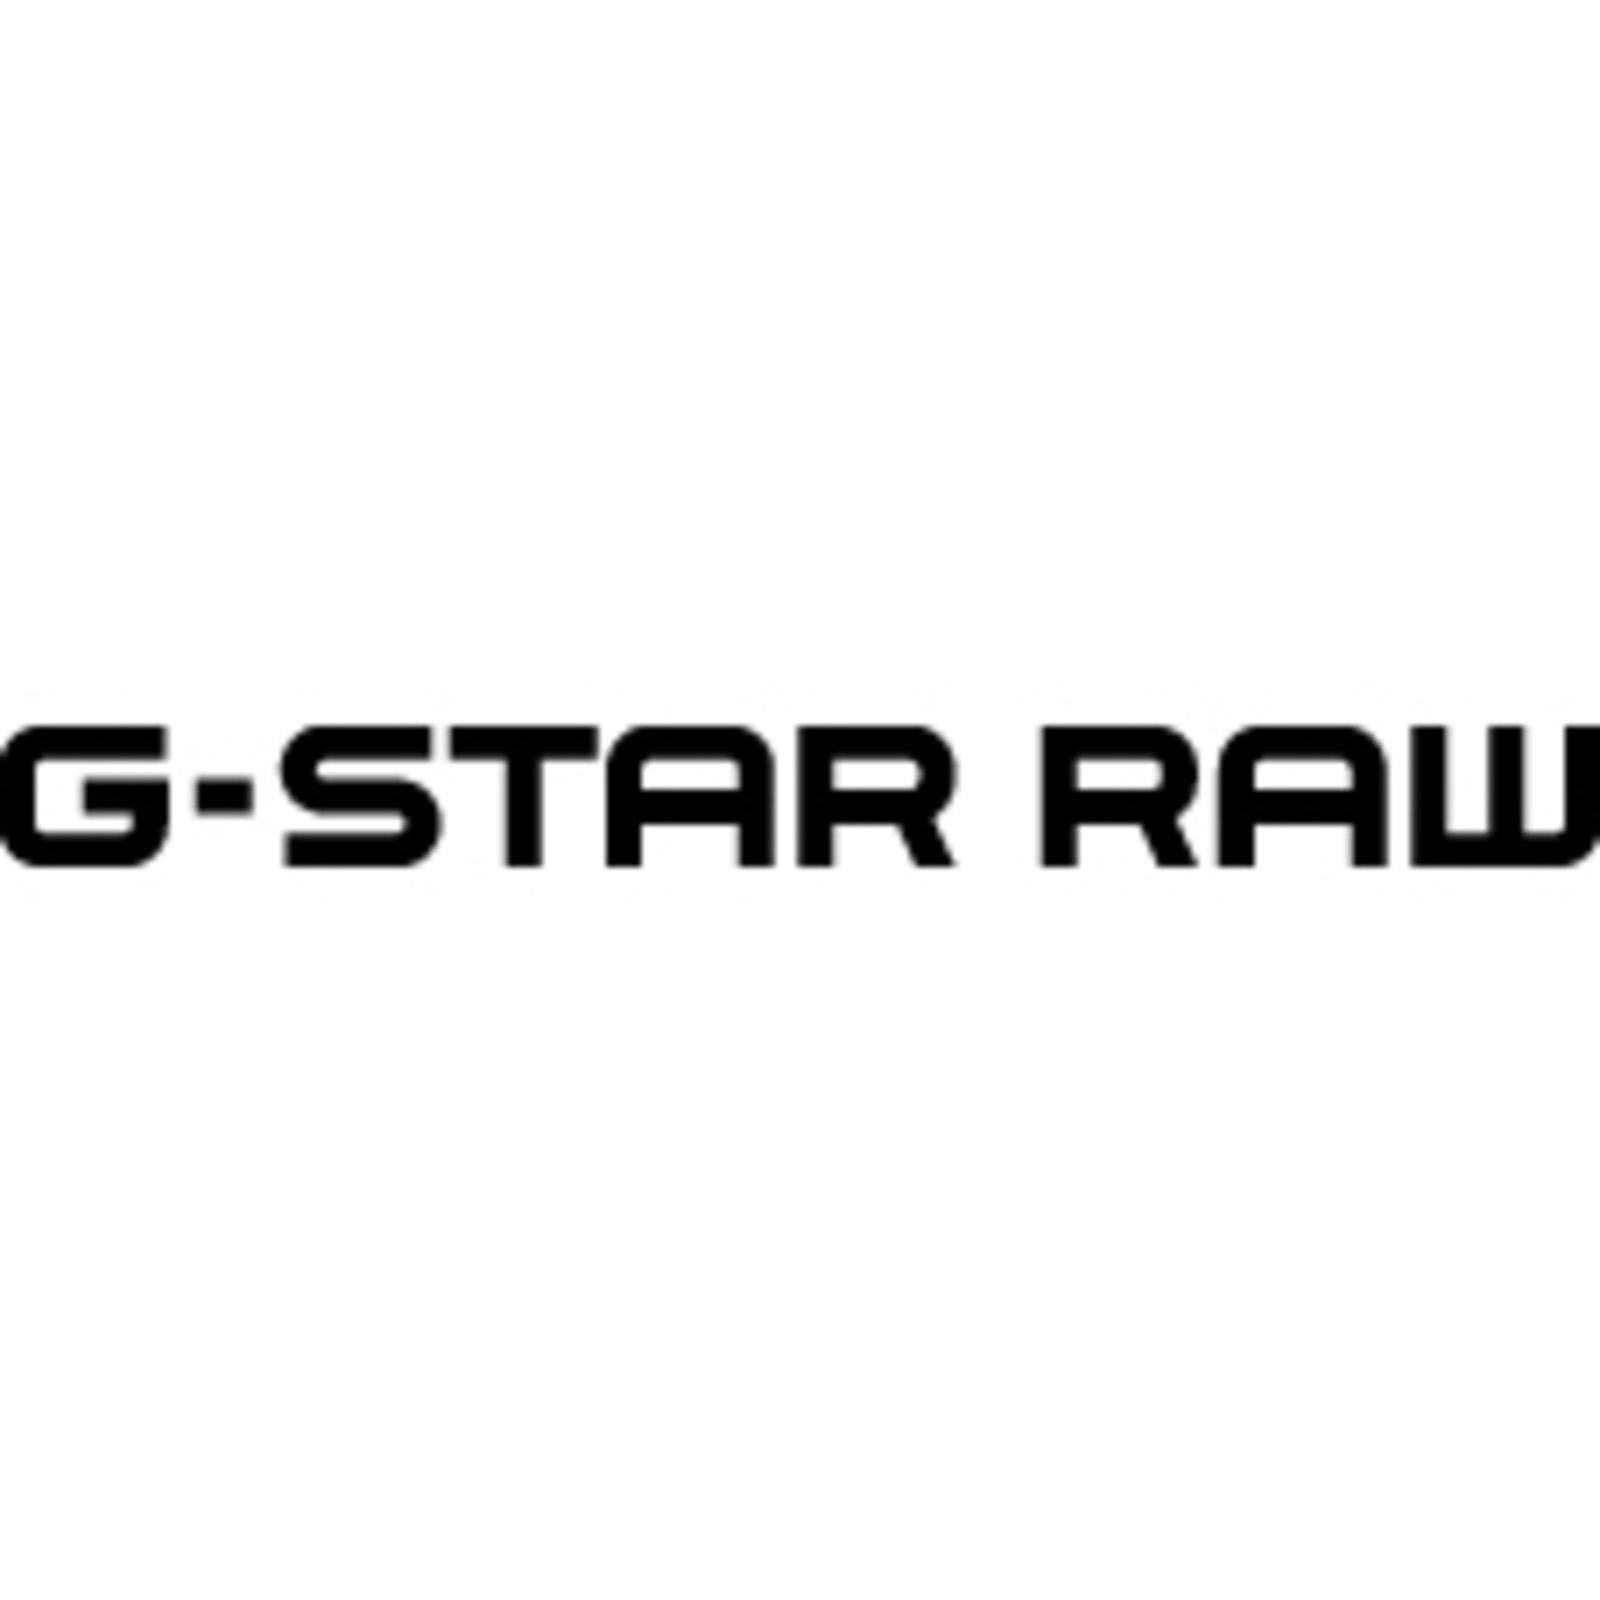 G-STAR RAW FOOTWEAR (Afbeelding 1)